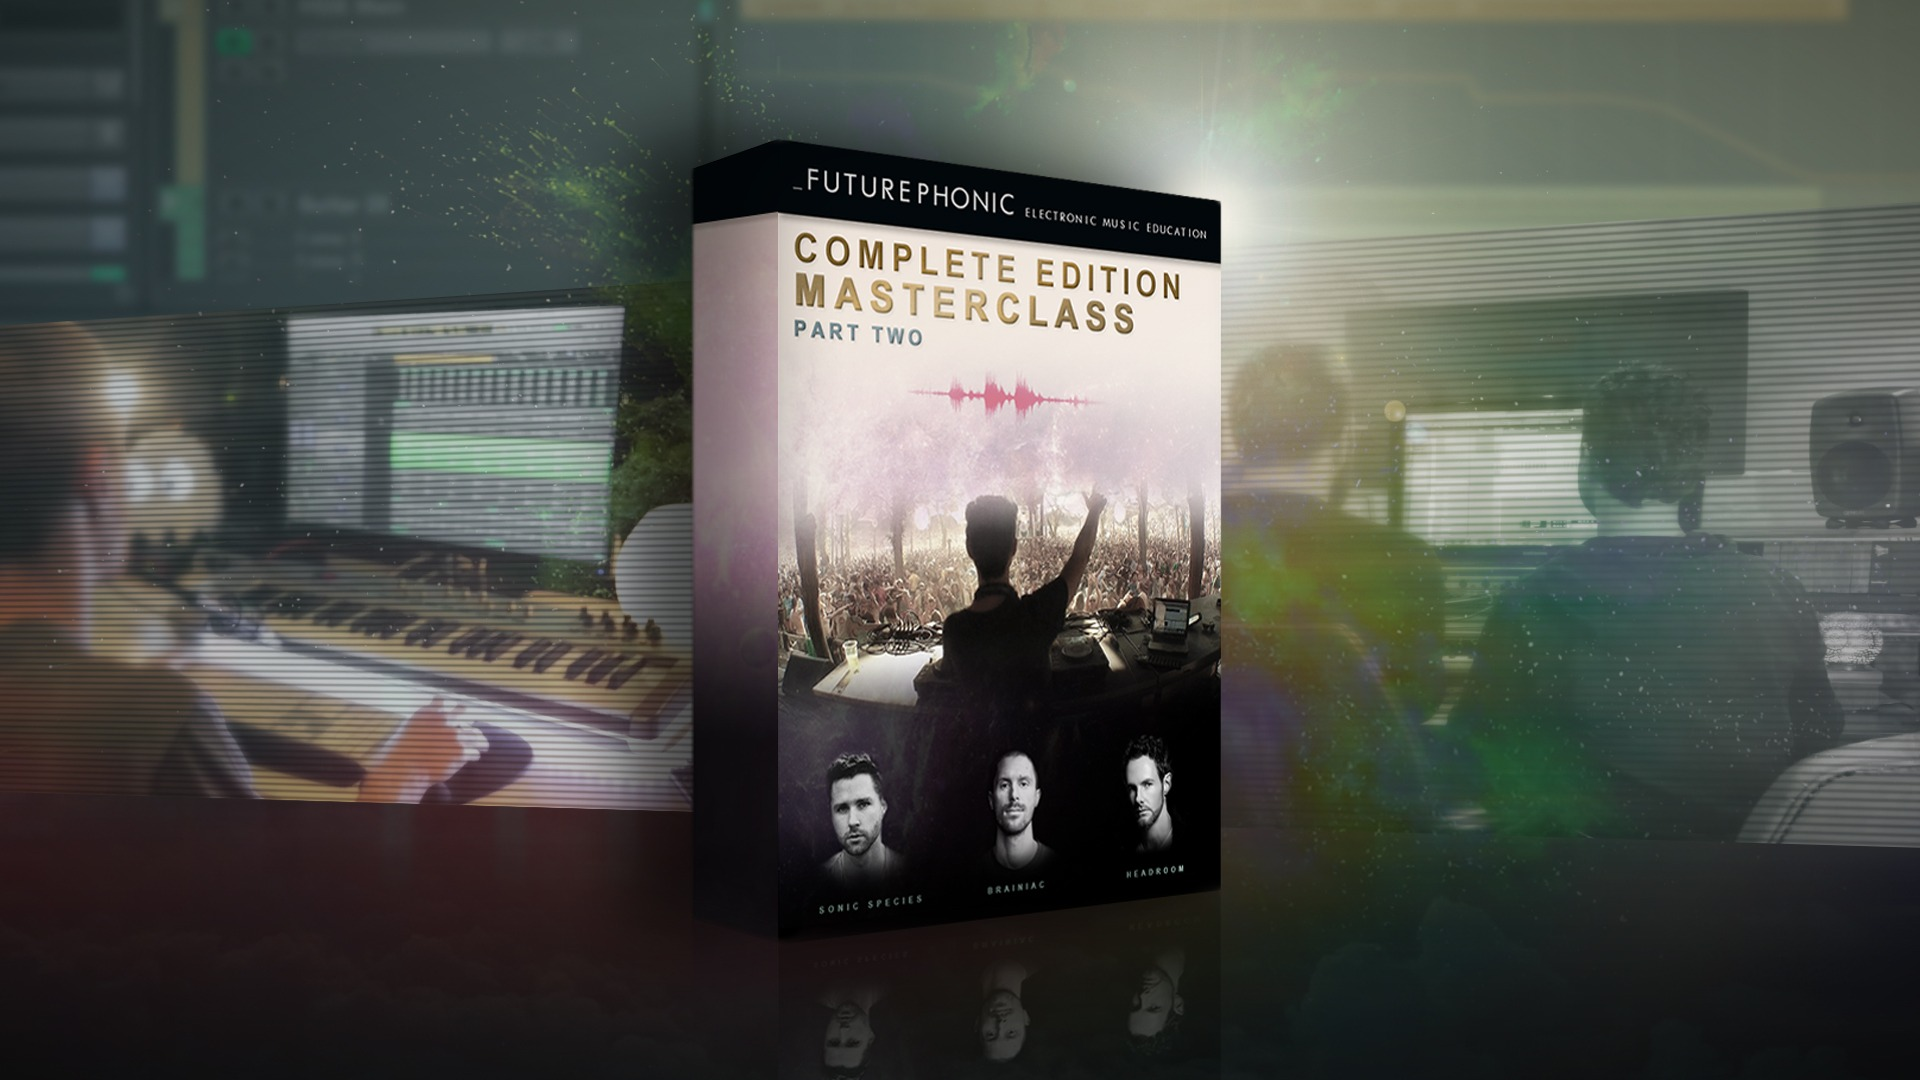 The Complete Edition Masterclass Part Two